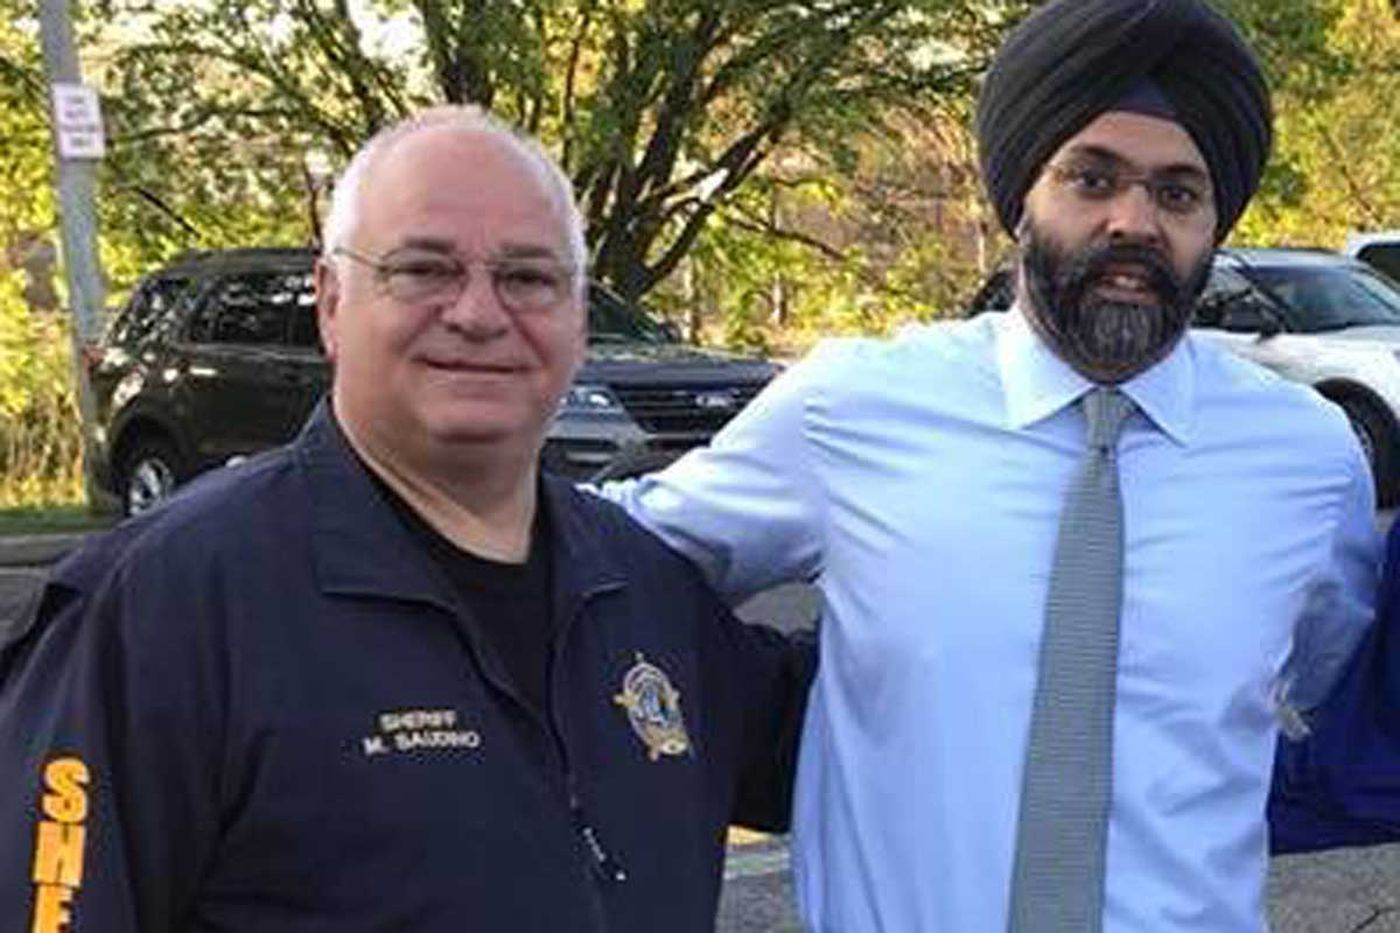 North Jersey sheriff resigns the day after racist comments made public